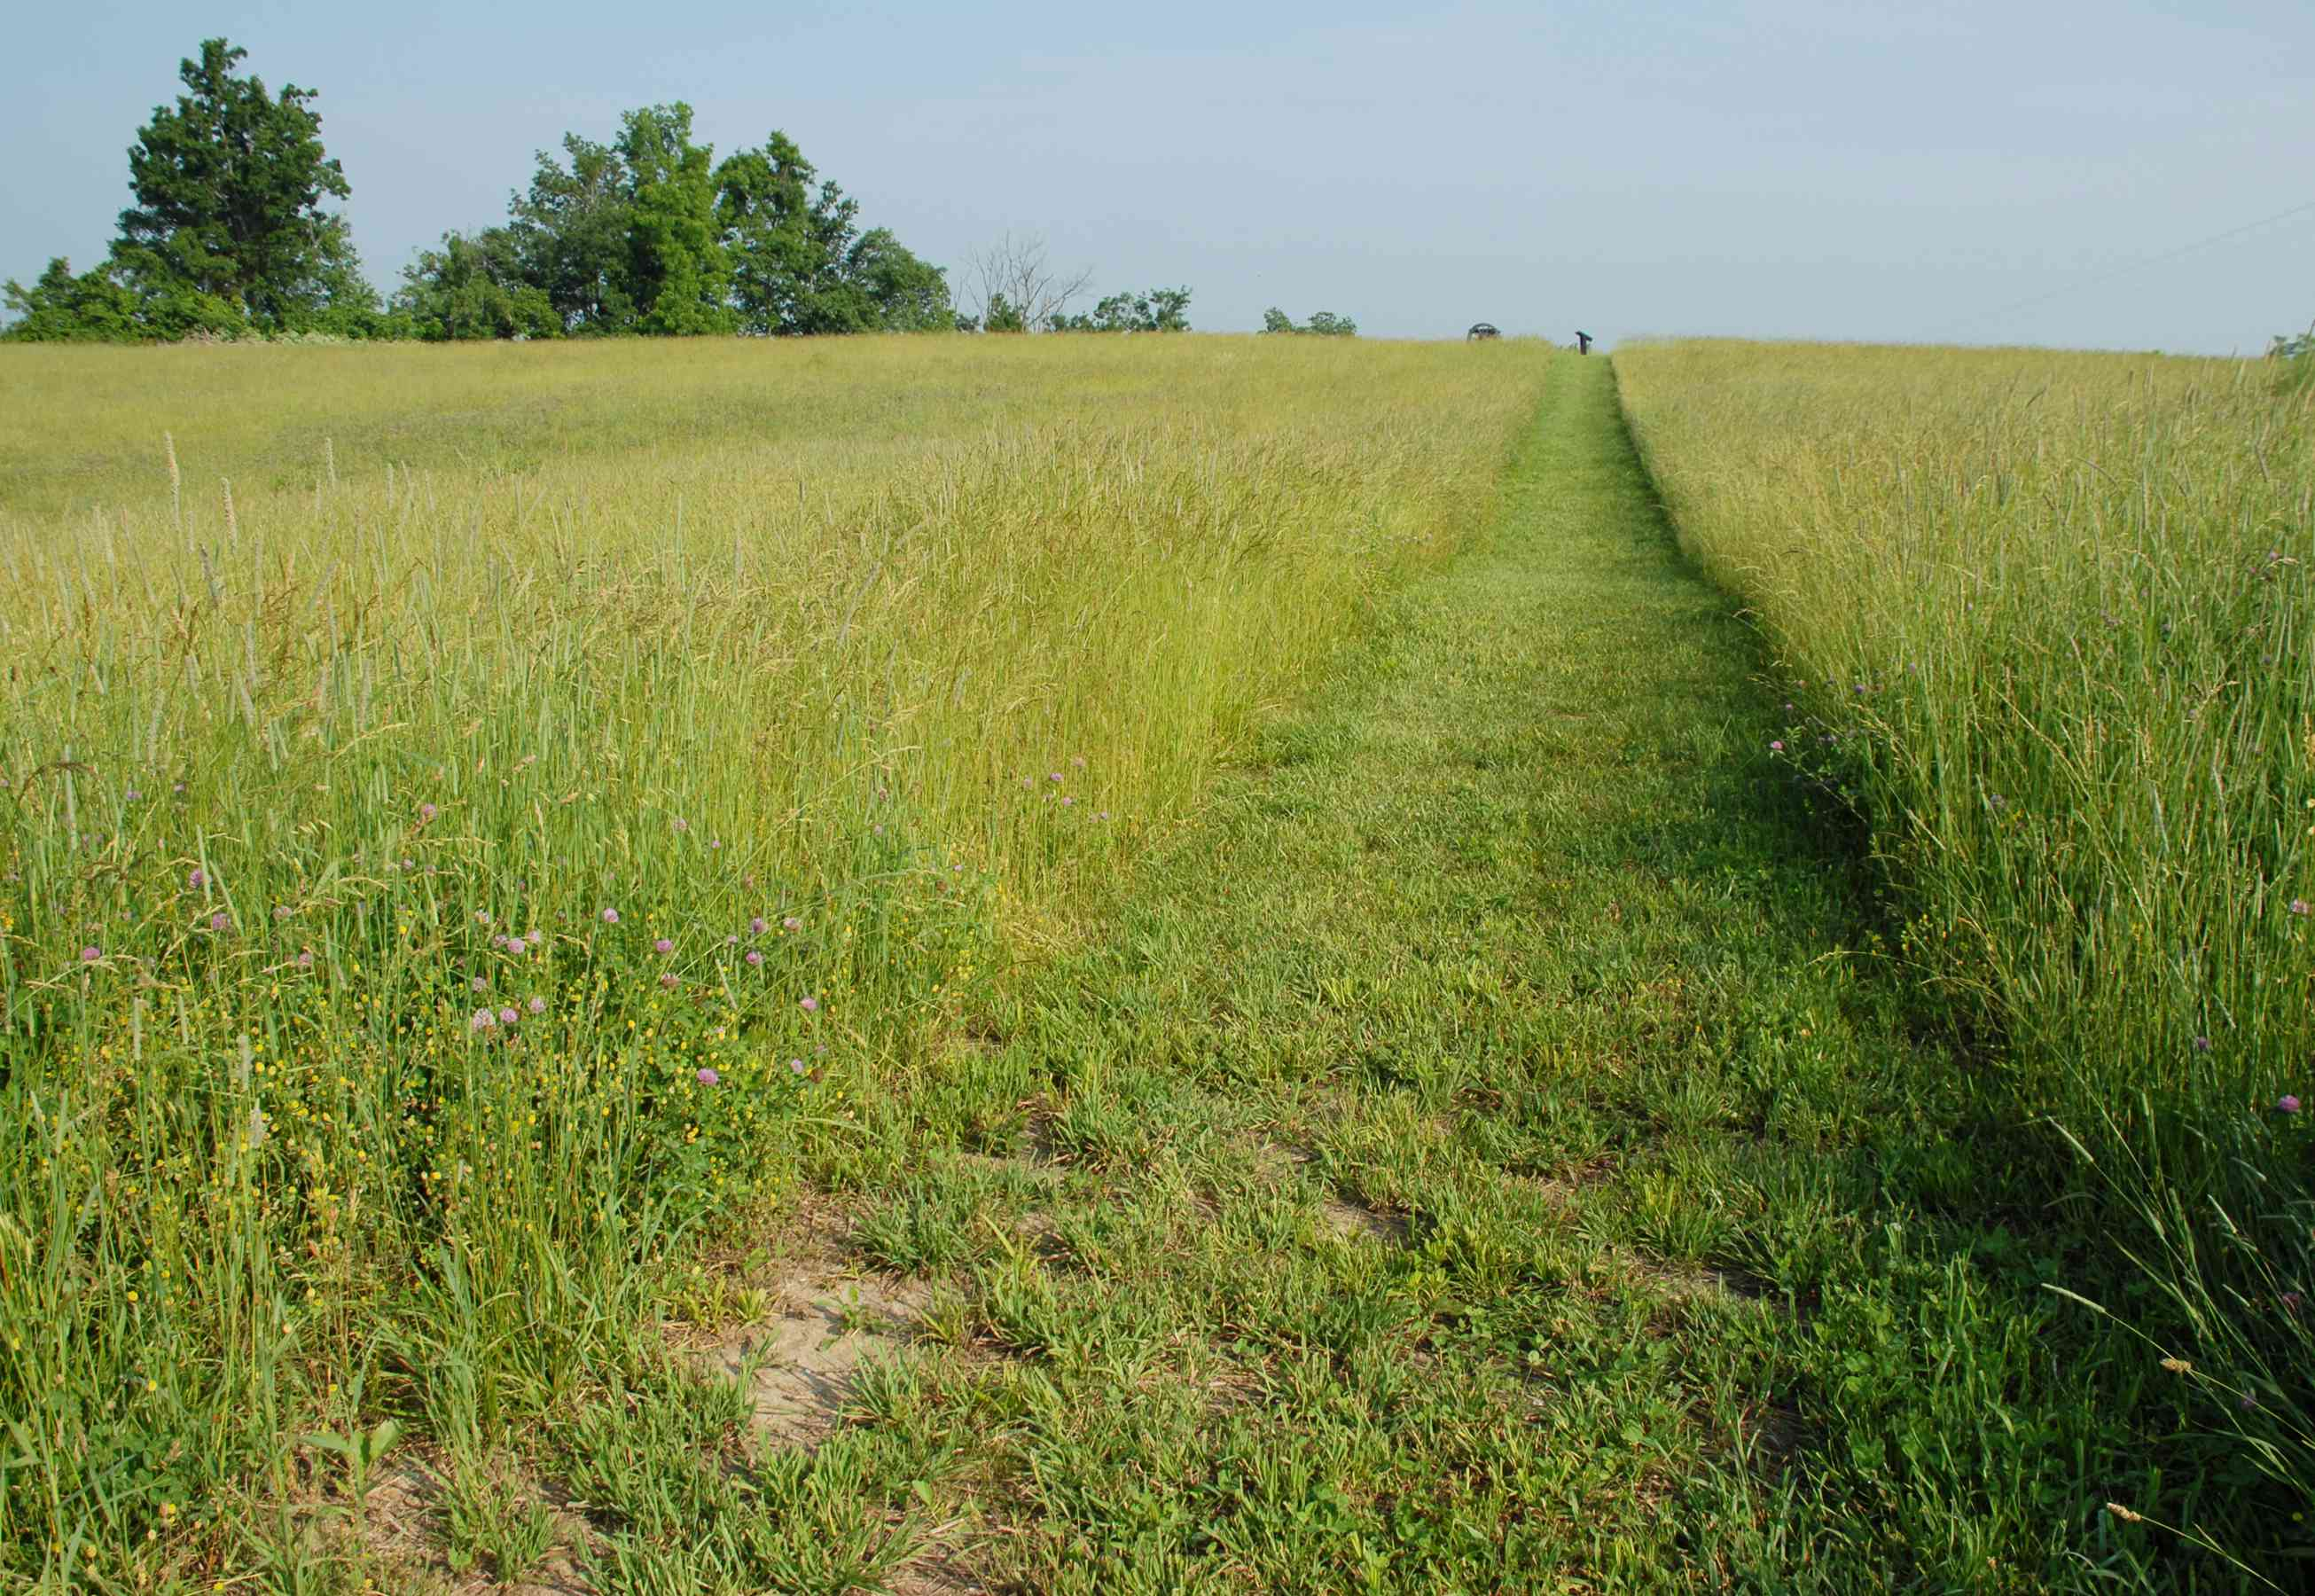 Trail at Perryville Battlefield in Kentucky